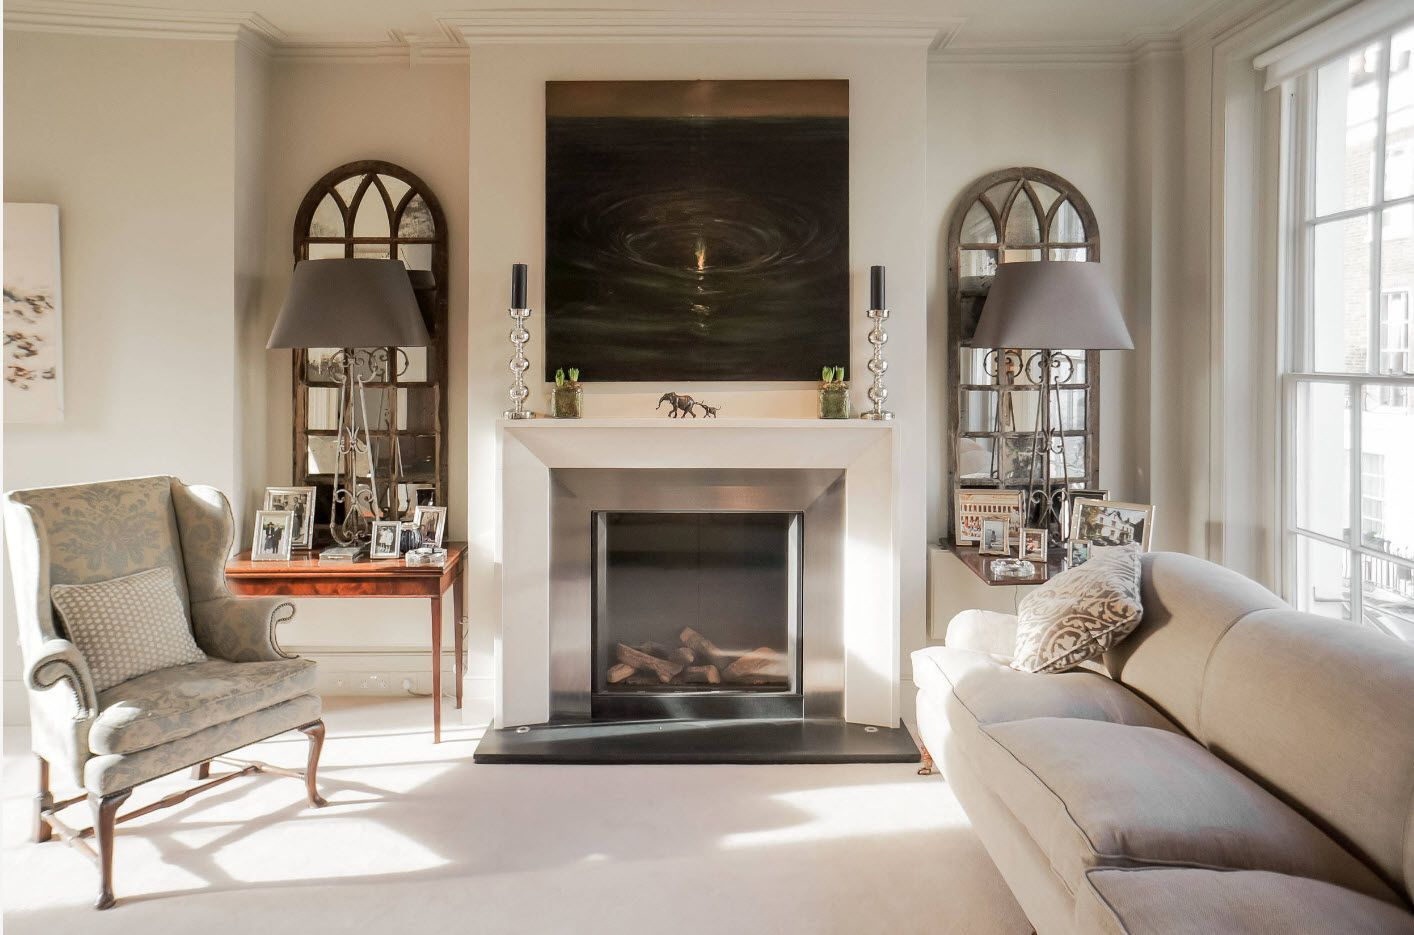 Creating Living Room Interior Inspiration Design Ideas 2017. Classic arrangement and fireplace for private house living